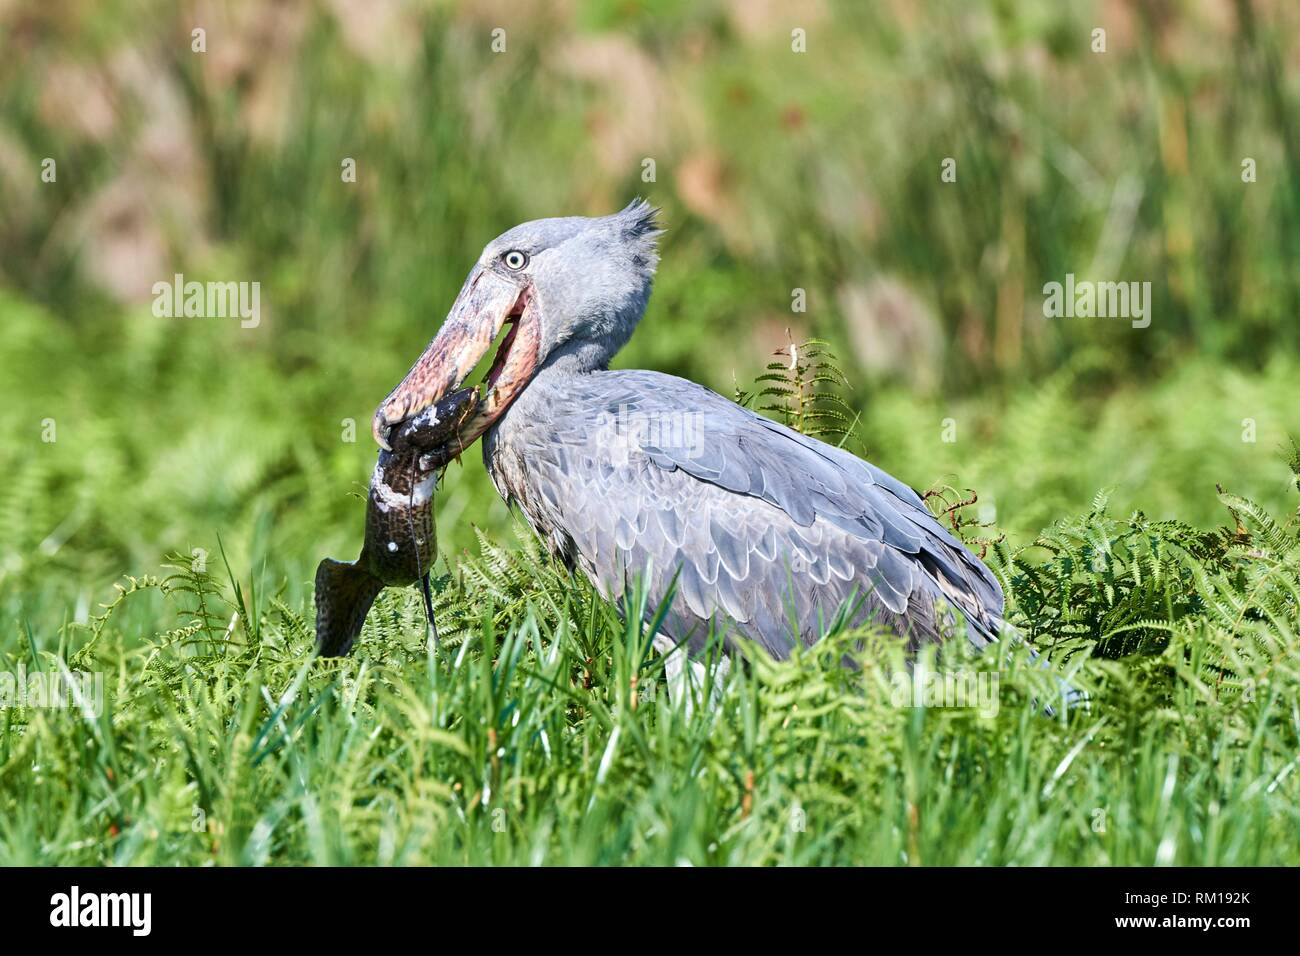 Whale headed / Shoebill stork (Balaeniceps rex) feeding on a Spotted African lungfish (Protopterus dolloi) in the swamps of Mabamba, lake Victoria, - Stock Image